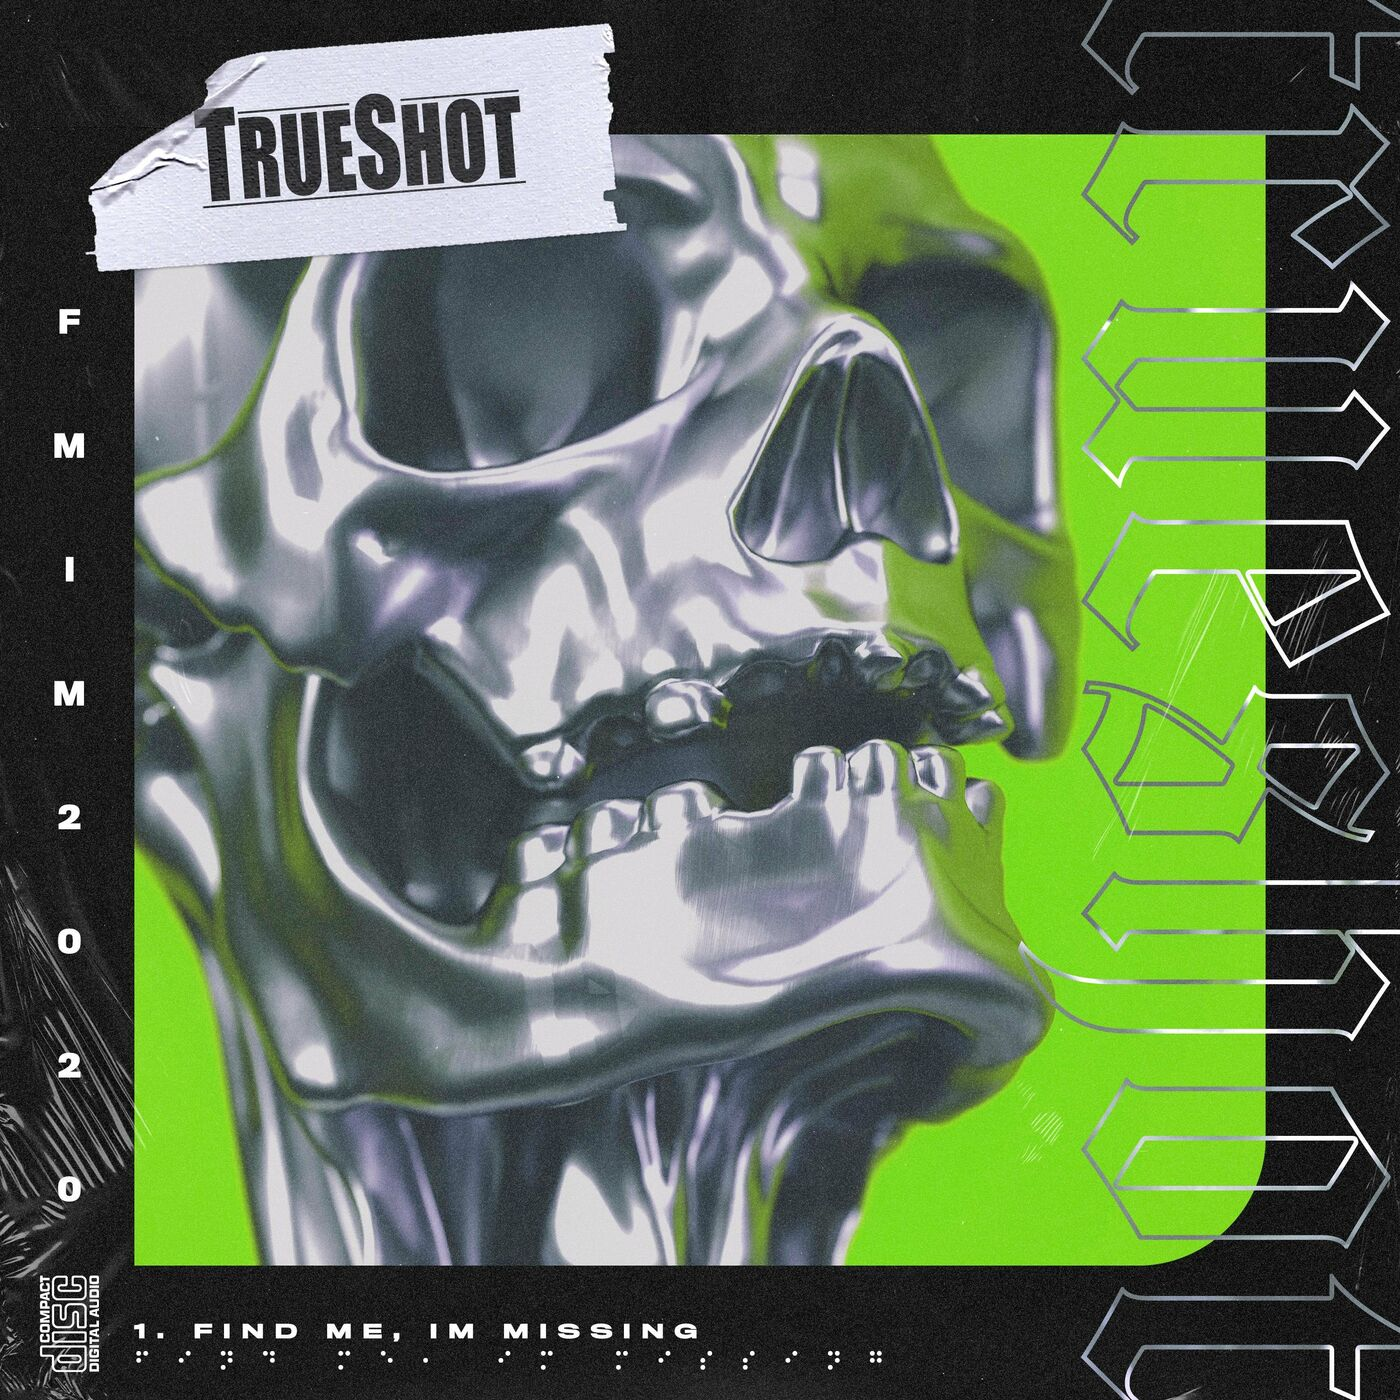 TrueShot - Find Me, I'm Missing [single] (2020)